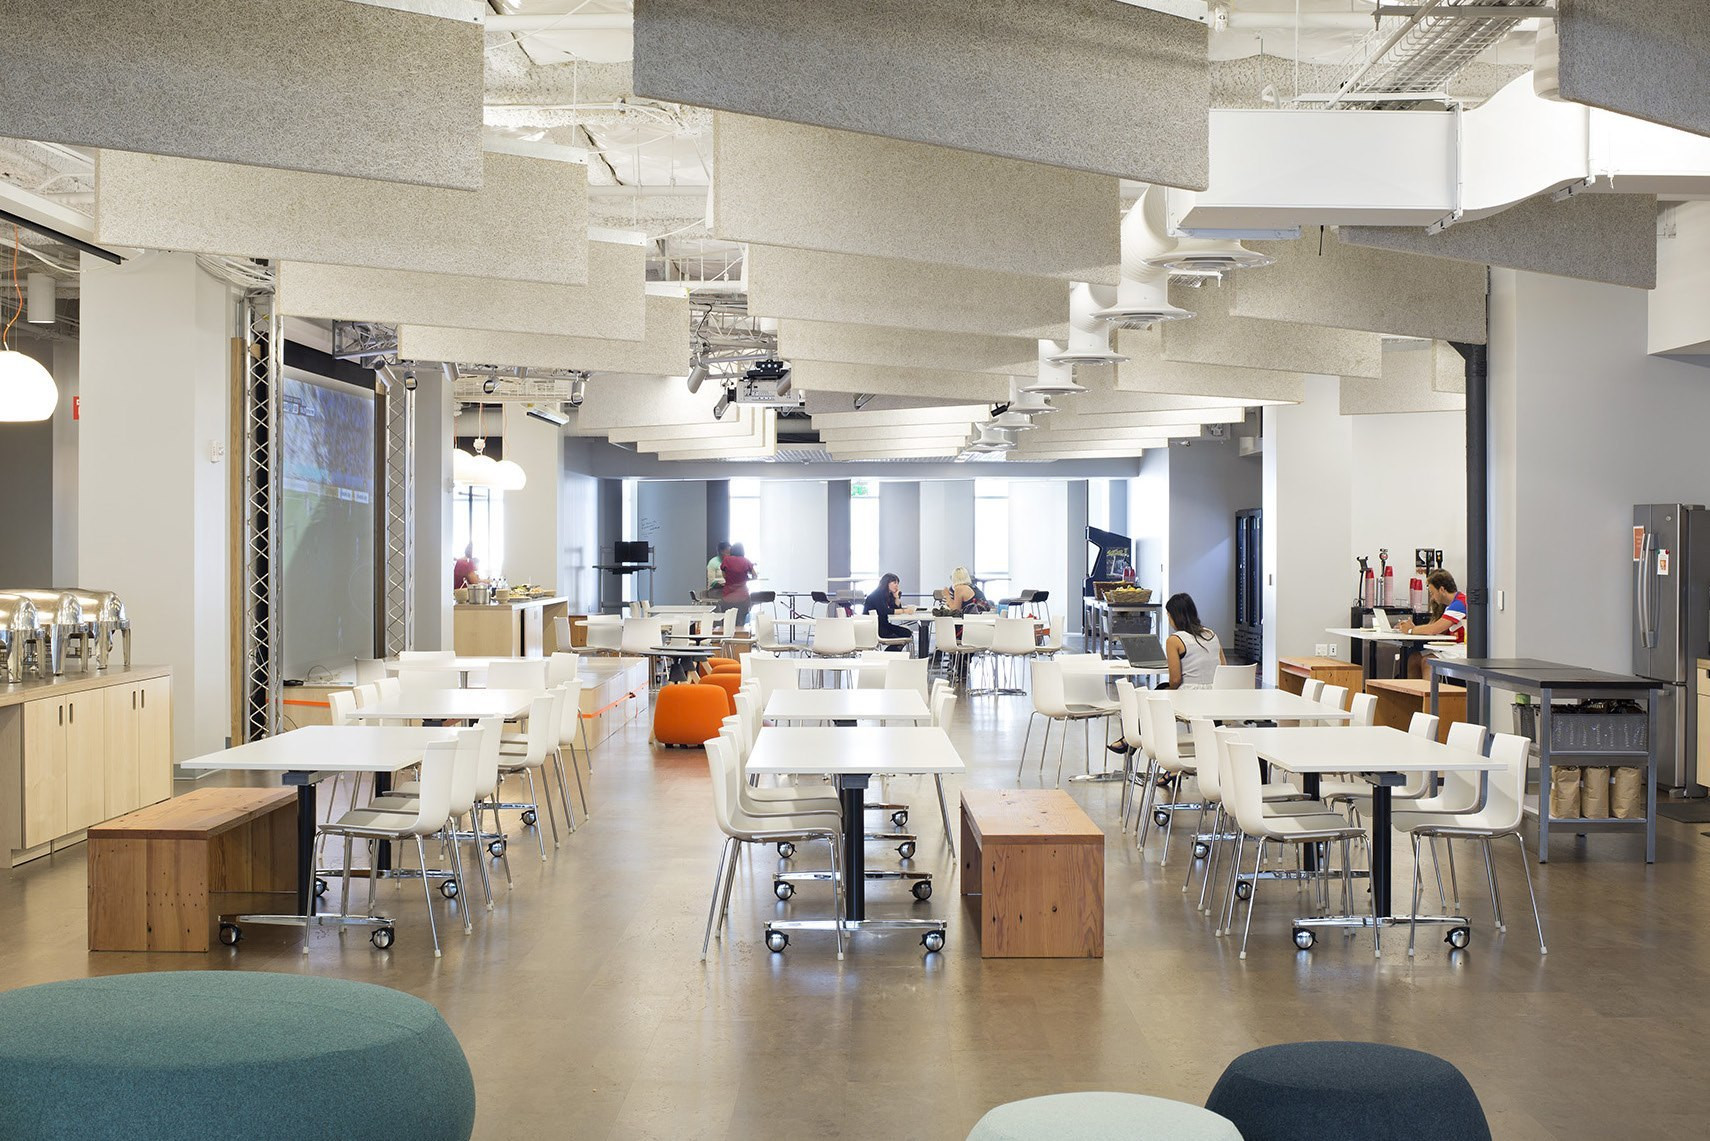 Take a Look at Eventbrite's New San Francisco Headquarters